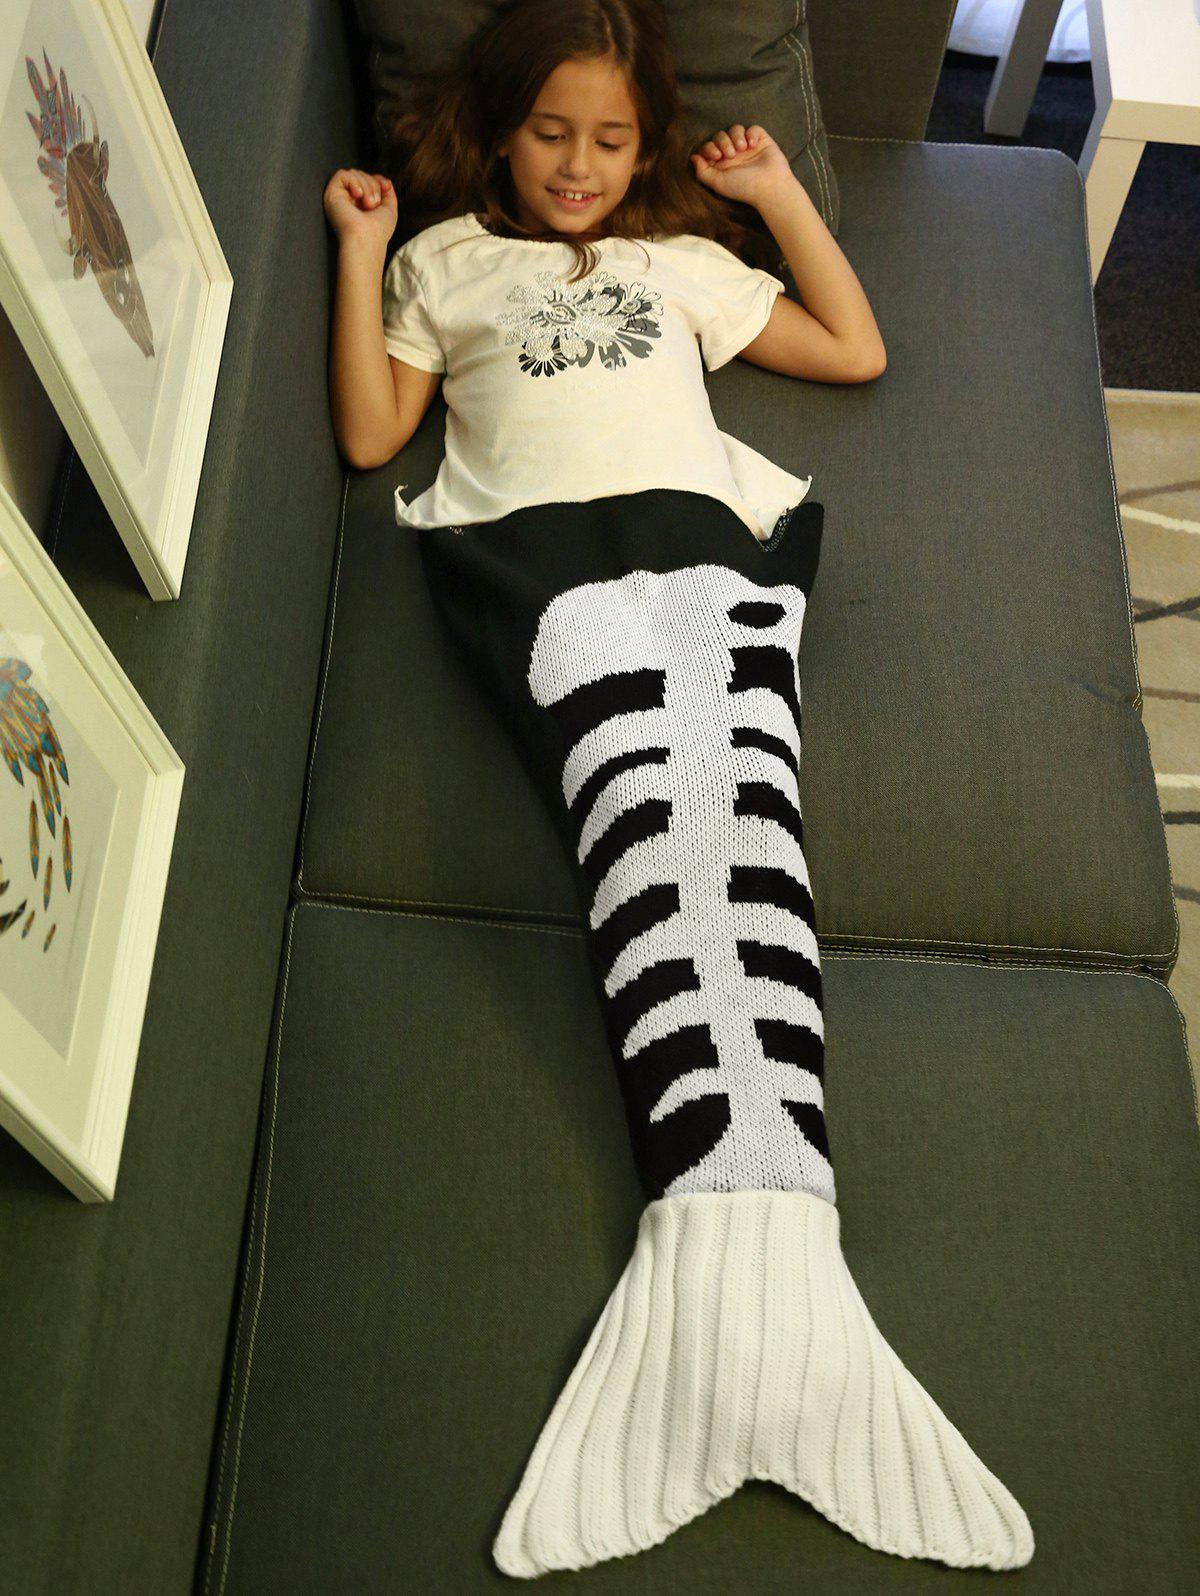 ComfortableFishbone Kintted Mermaid Tail Blanket For Kids - WHITE/BLACK S